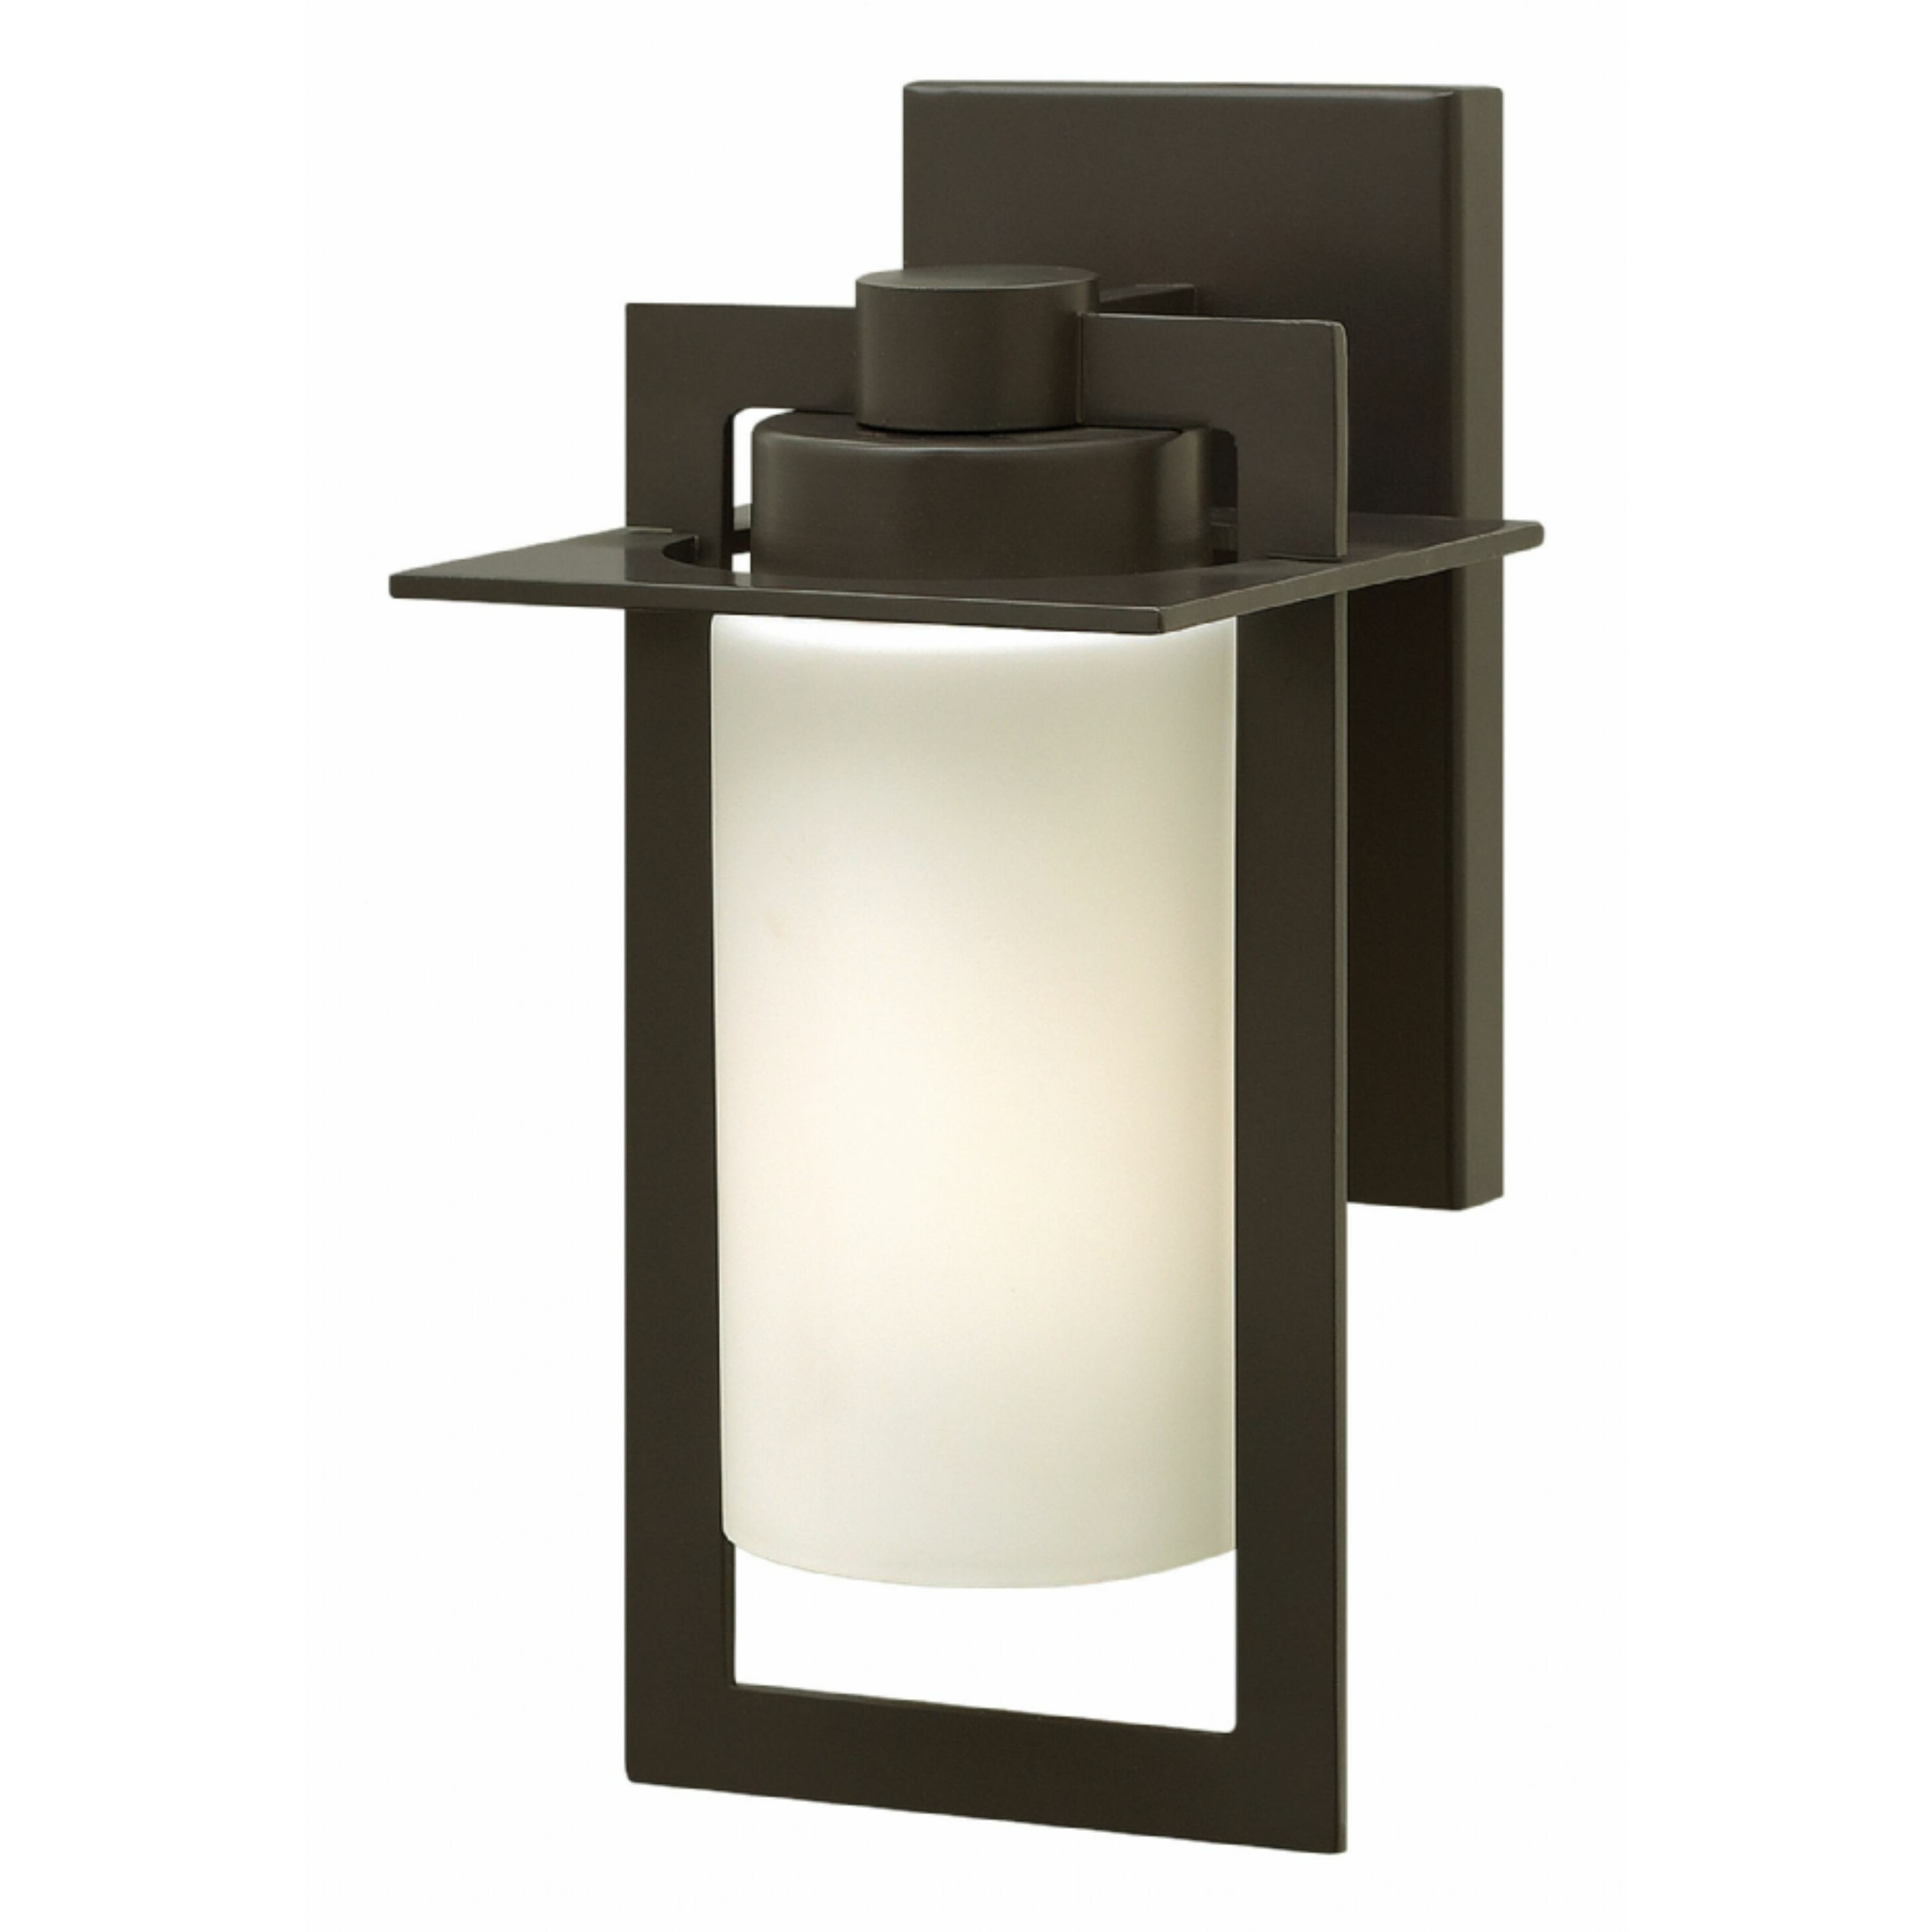 Wall Lantern Replacement Glass : Hinkley Lighting Colfax 1 Light Outdoor Wall lantern & Reviews Wayfair